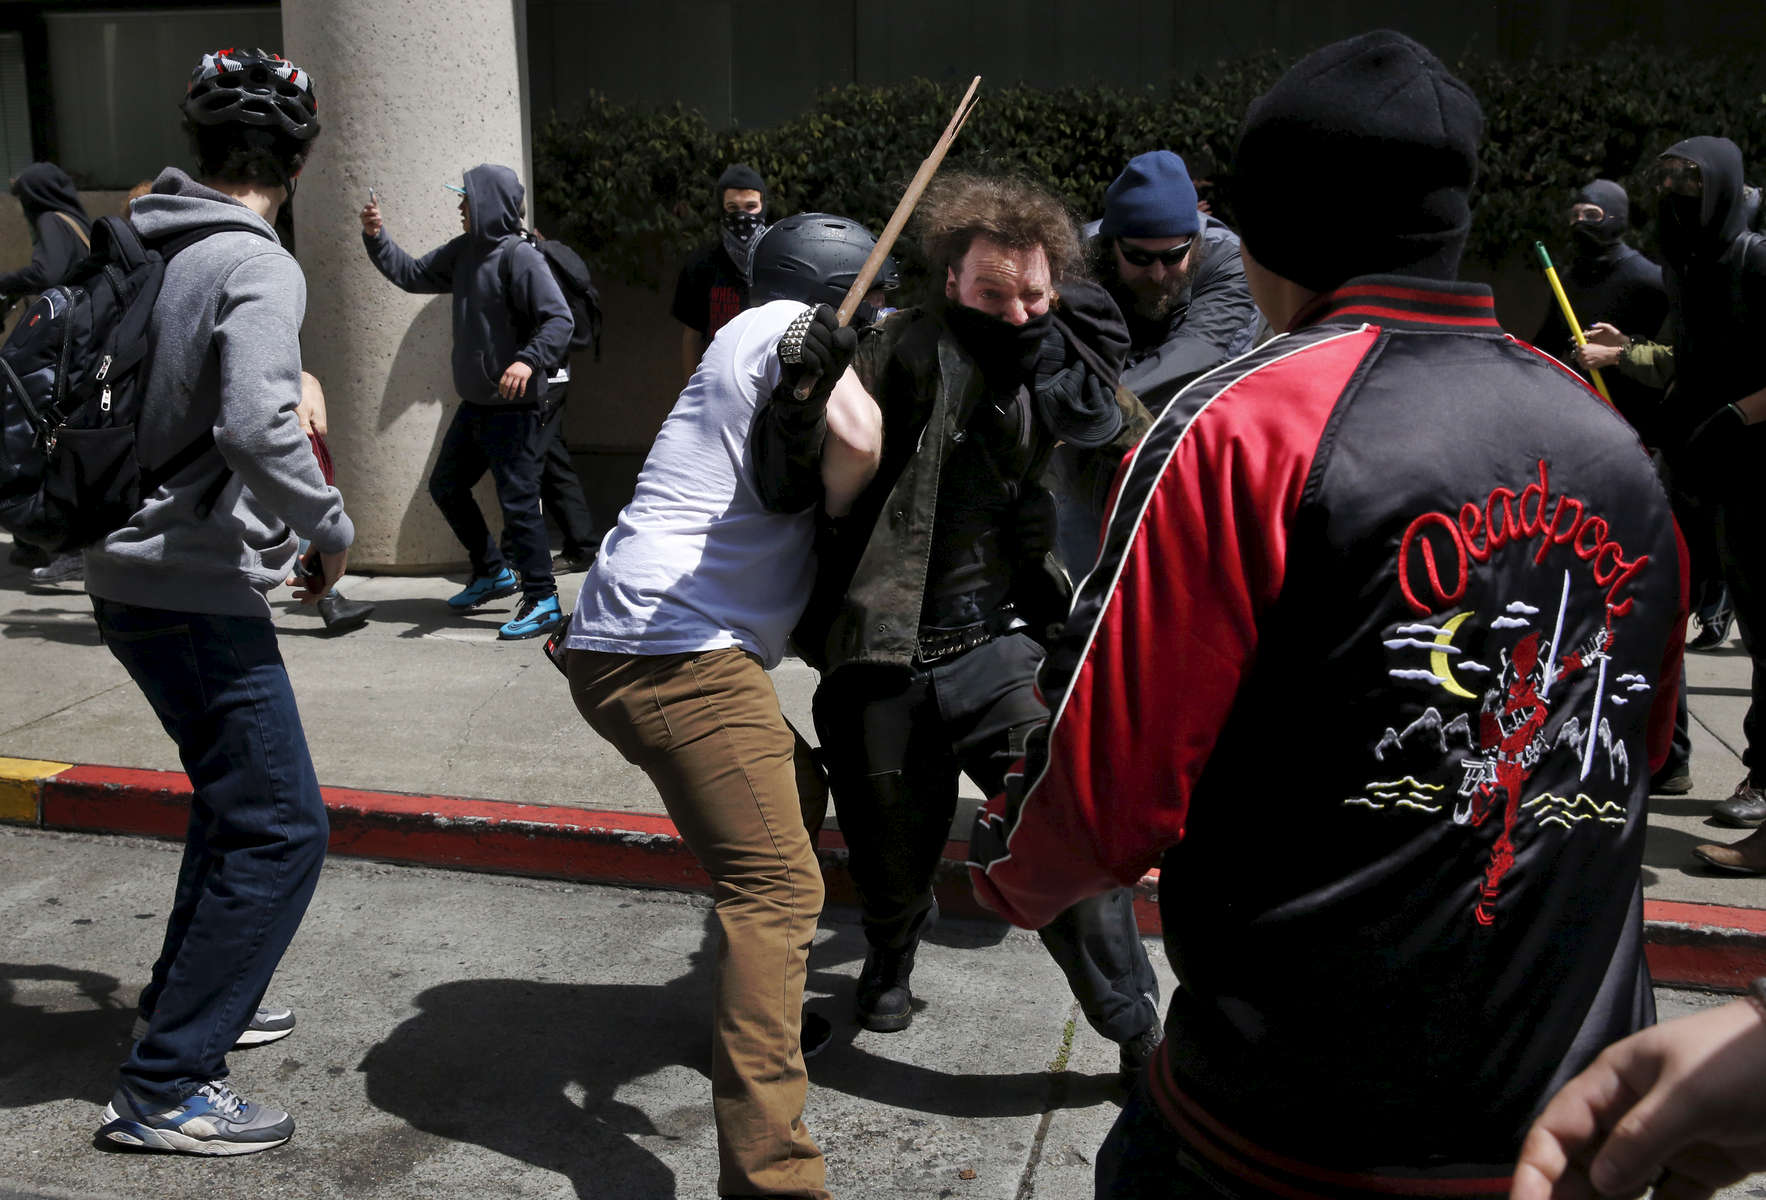 Pro-Trump and anti-fascist protesters brawl in the street on Milvia and Center streets after a rally called {quote}Patriot's Day Free Speech Rally{quote} in Martin Luther King Jr. Civic Center Park turned violent April 15, 2017 in Berkeley, Calif.